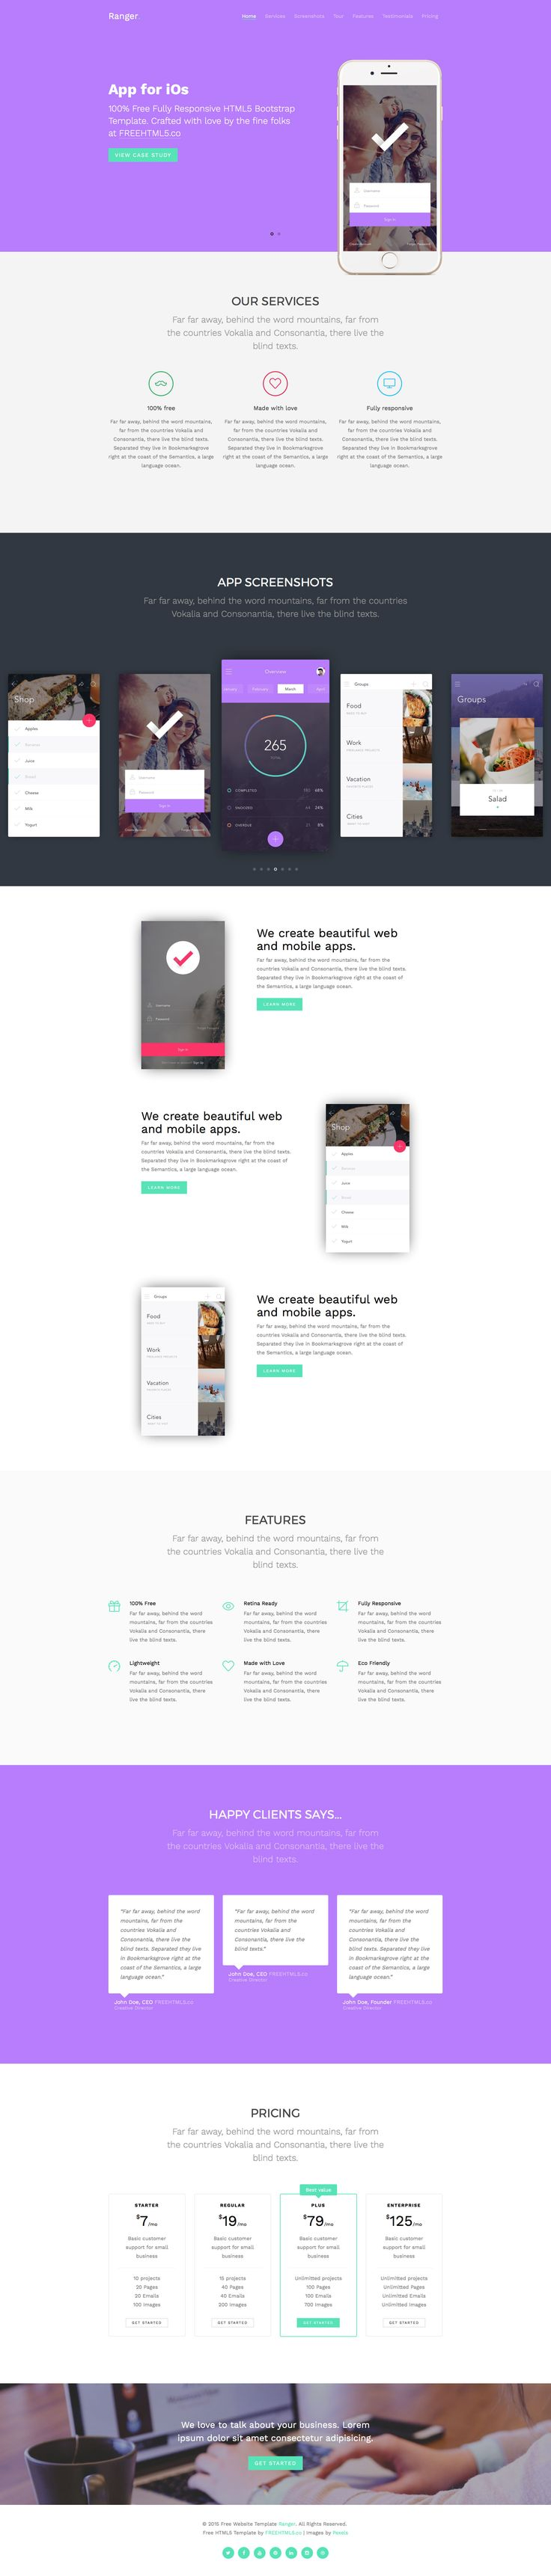 Ranger is a free responsive HTML5 website App template using Bootstrap 3 framework. It is a one page application template with modern and clean look. Ranger app template comes with the latest technology such as HTML5,CSS3,Sass and jQuery.